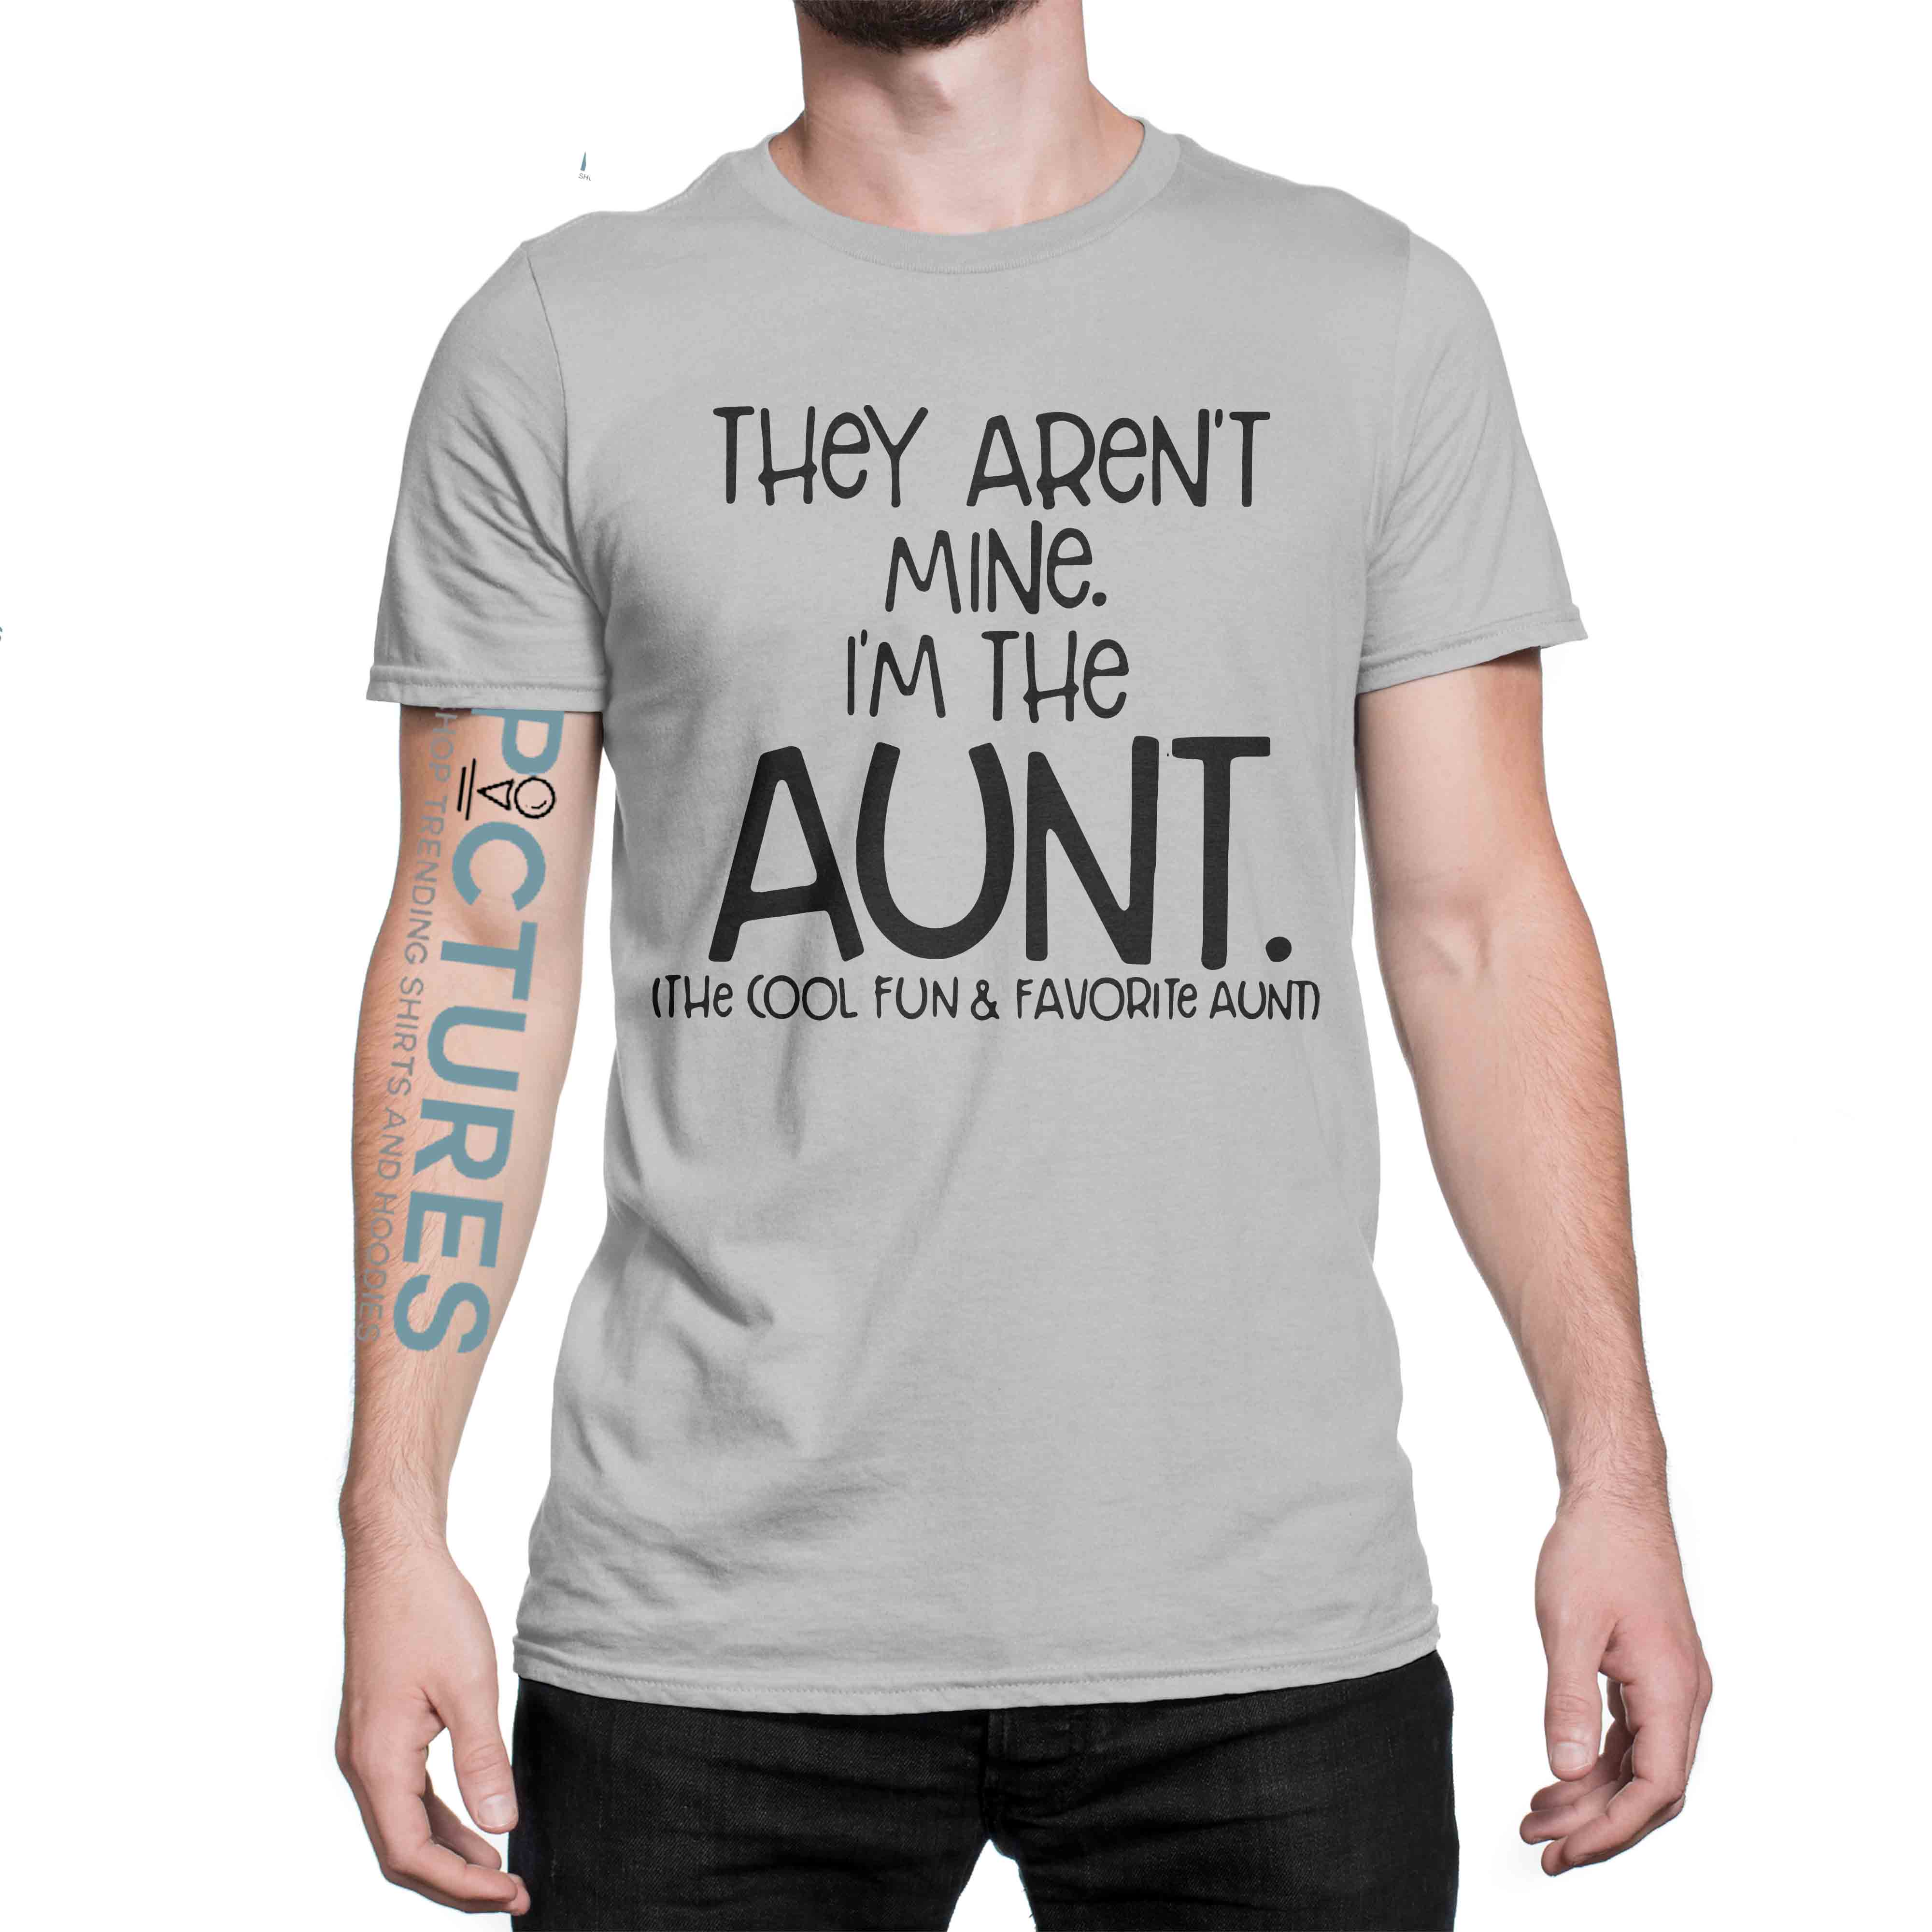 They are not mine I'm the aunt the cool and favorite aunt shirt